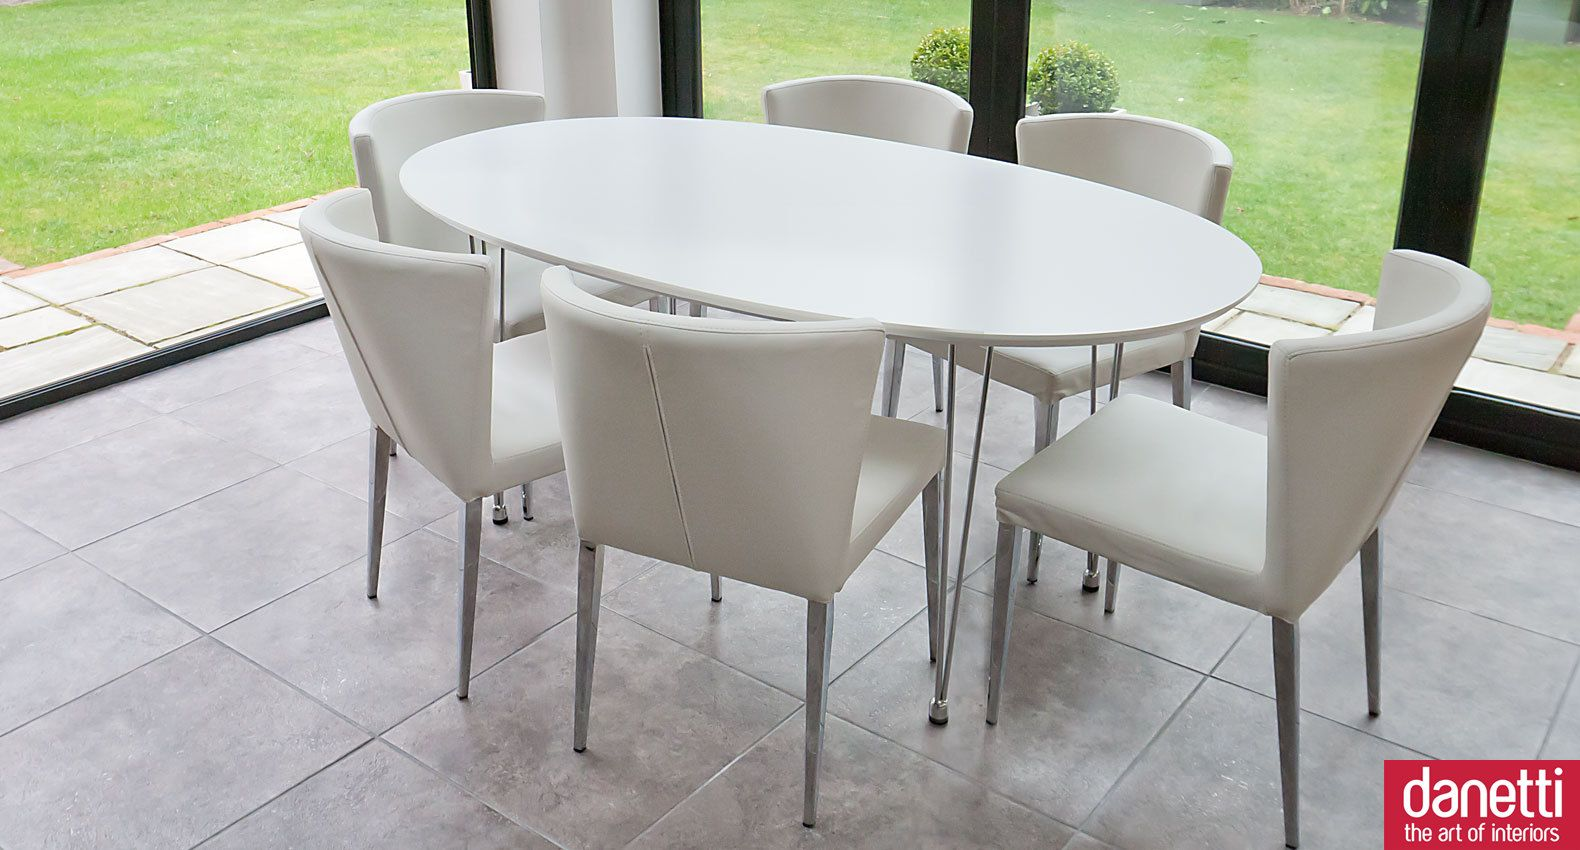 A modern curvy dining set which is new and exclusive to for White oval back dining chair